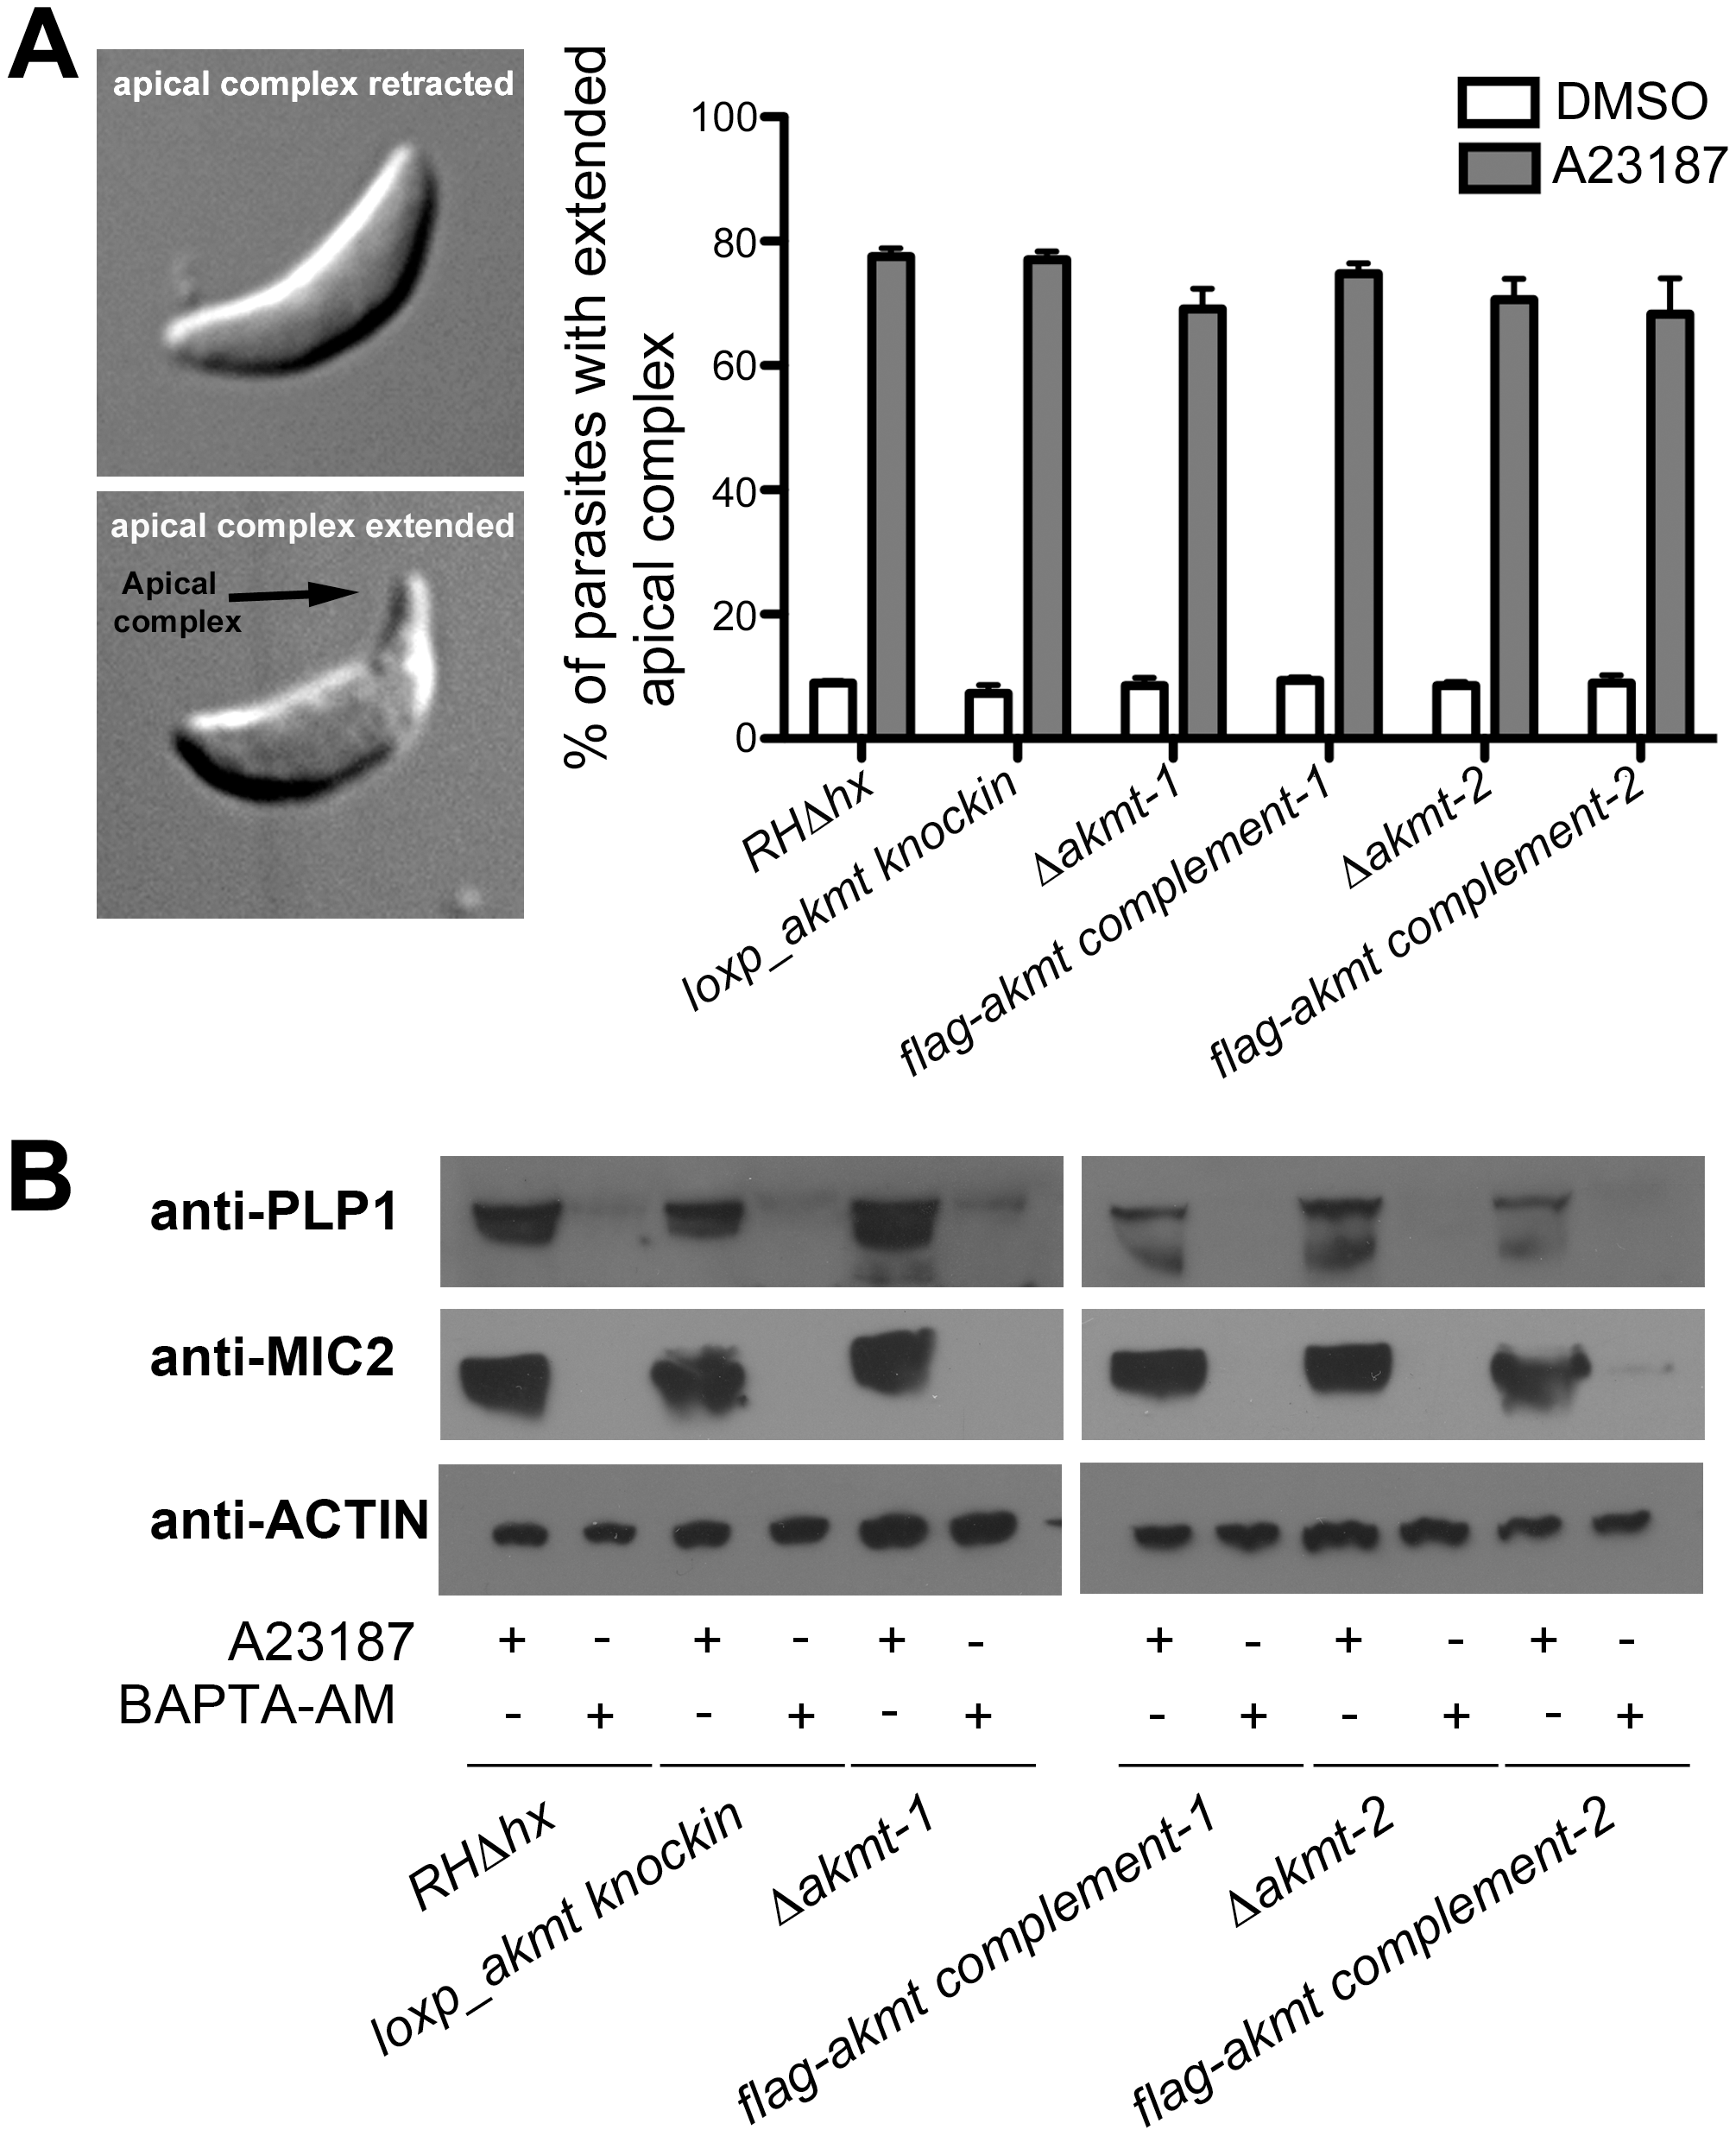 Ca<sup>2+</sup> influx induced apical complex extension and microneme secretion are not affected in extracellular <i>Δakmt</i> parasites.